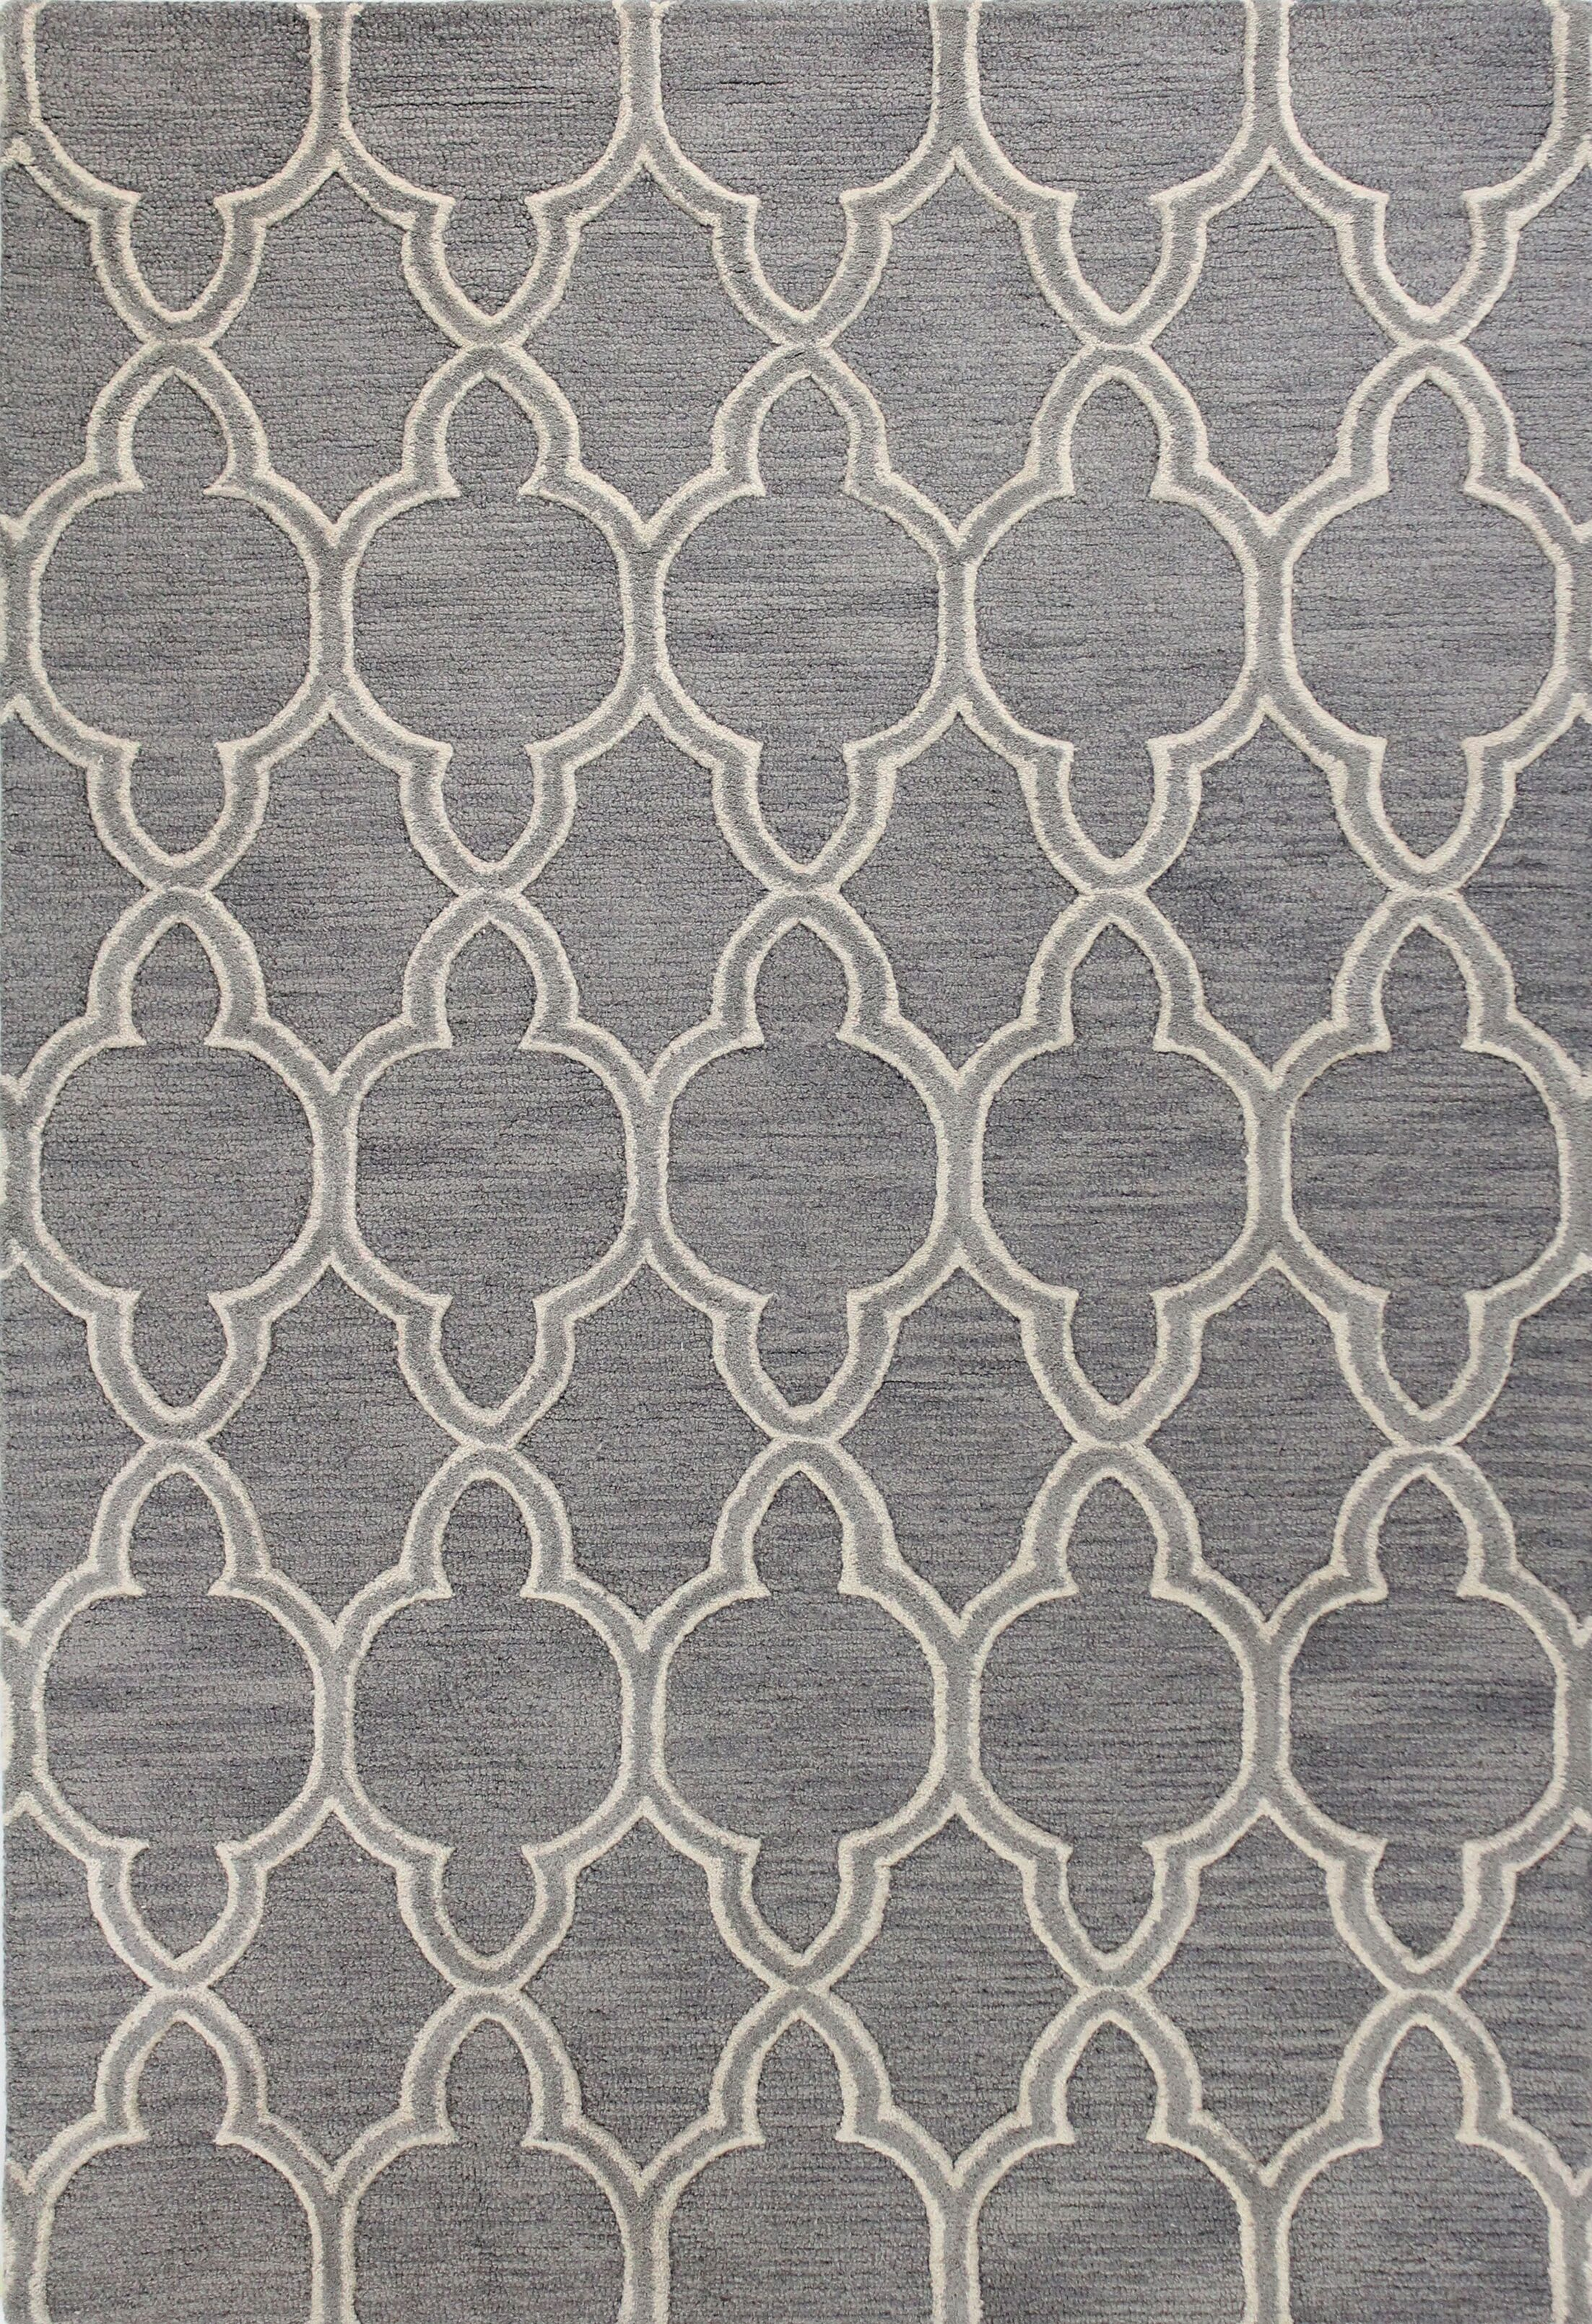 Octavia Hand-Tufted Grey Area Rug Rug Size: 7'6